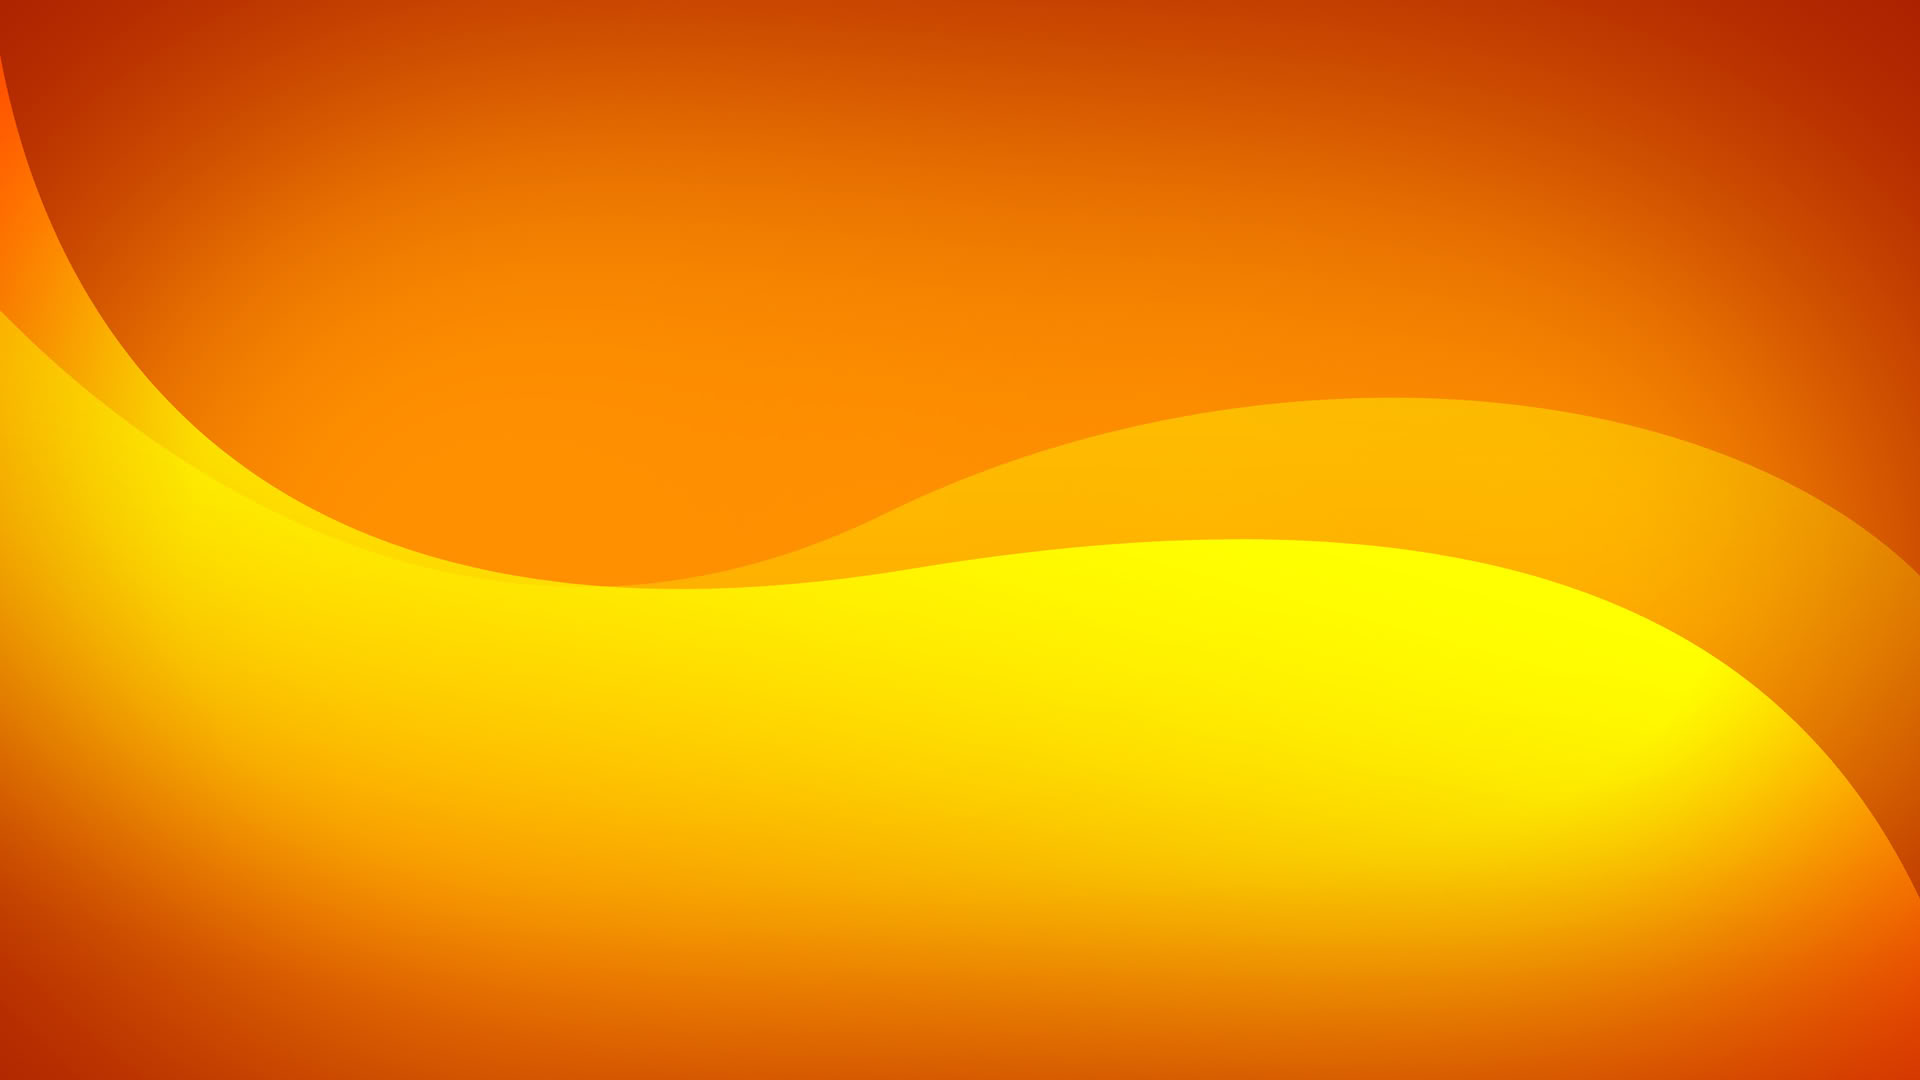 Cool Orange Background Designs – Design & art